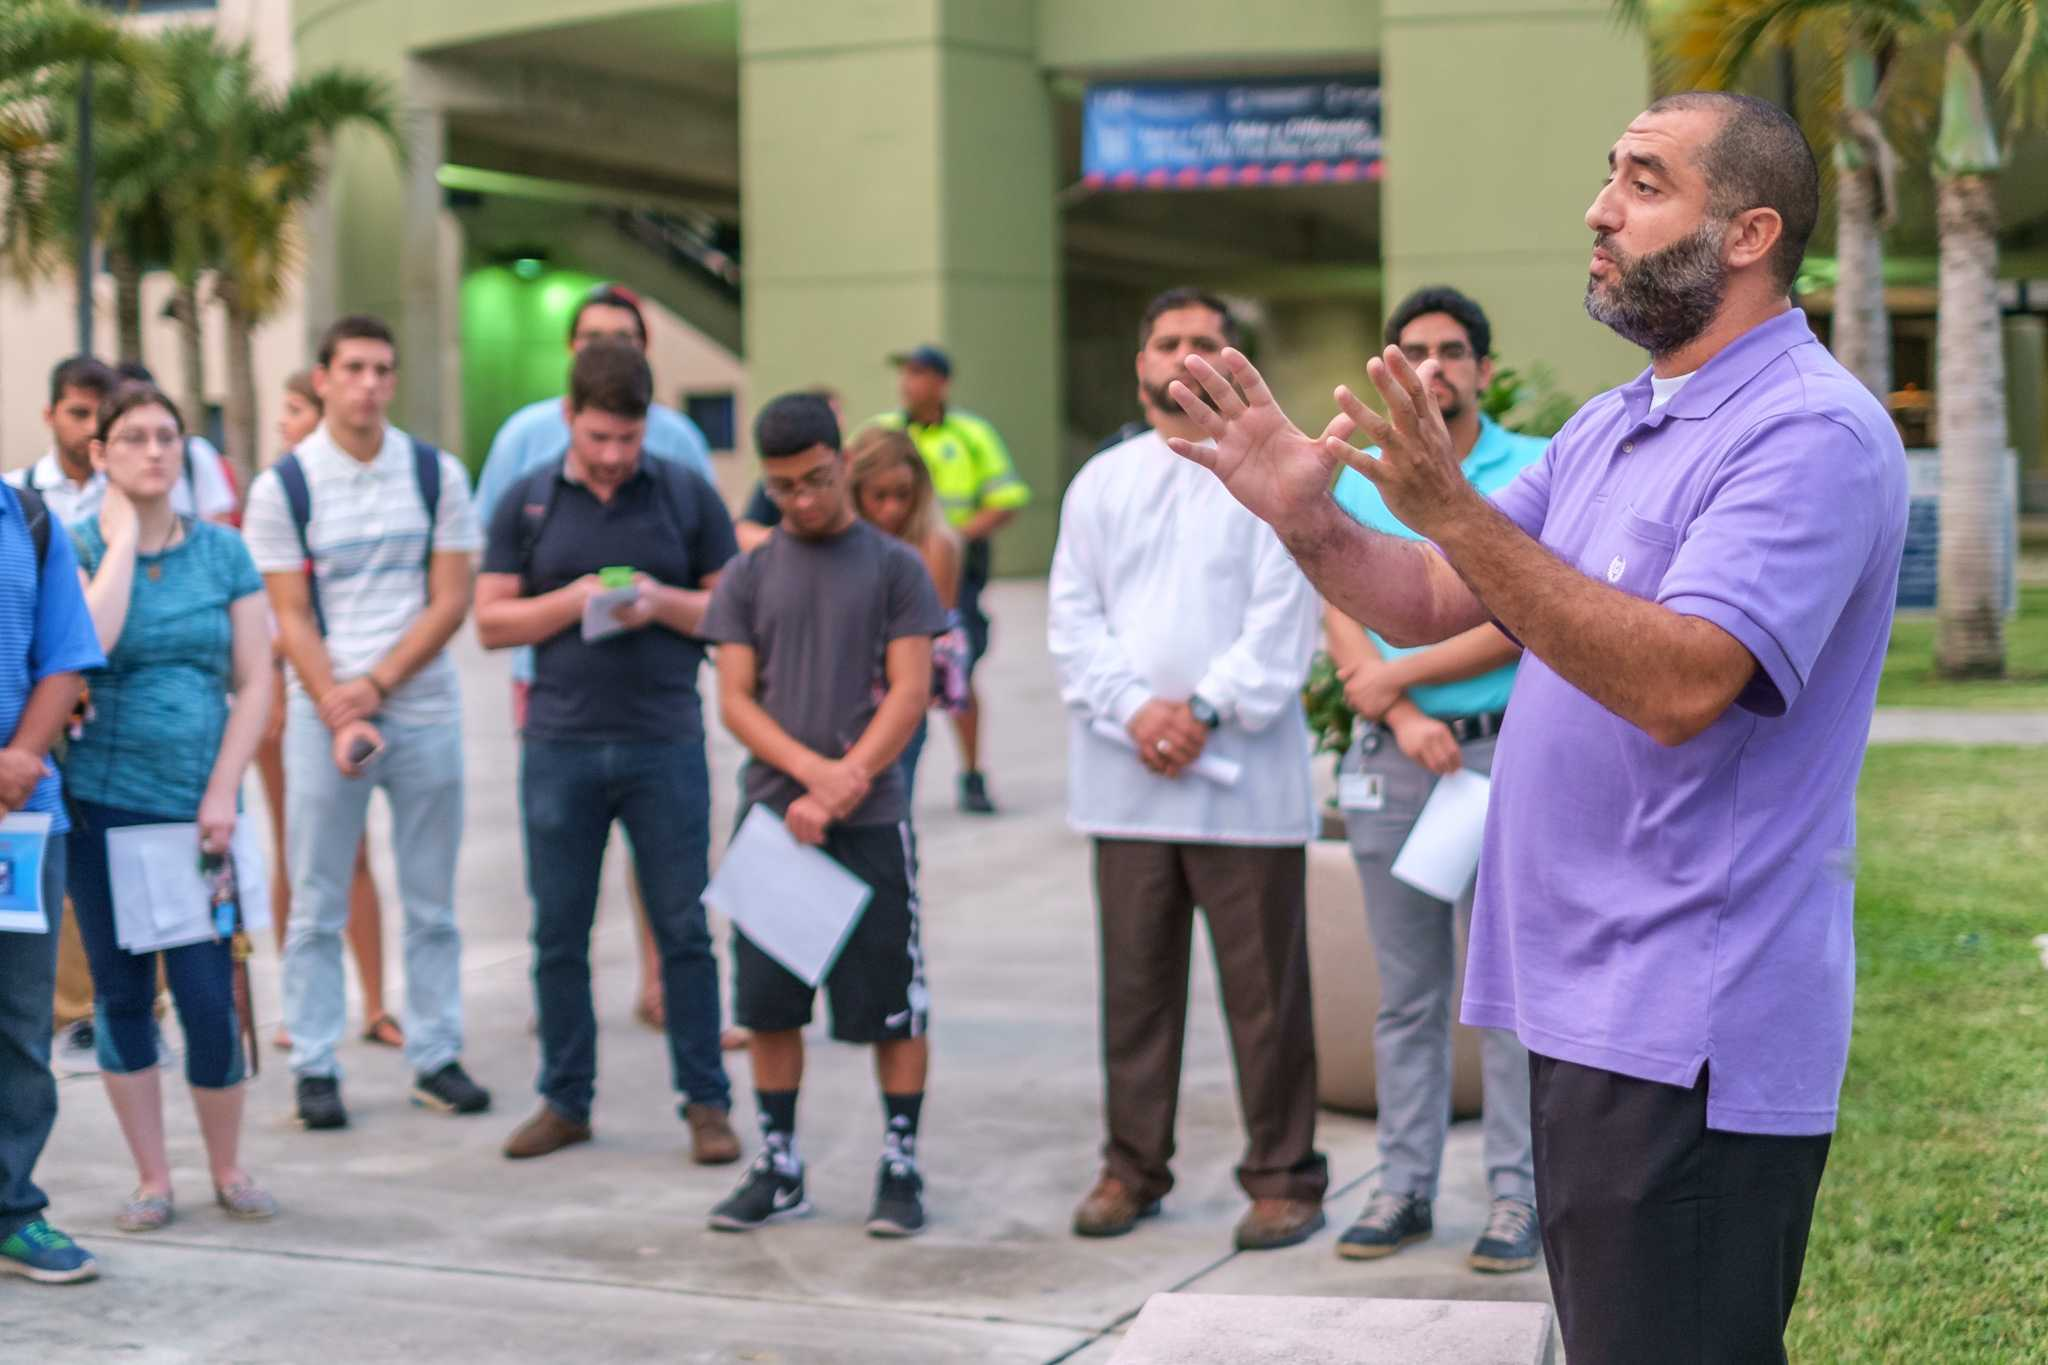 Imam Fathi Khalfi of the Islamic Center of Boca Raton talks about how the  terrorists involved in the Paris attacks does not represent Islam. | Mohammed F Emran, Asst. Creative Director